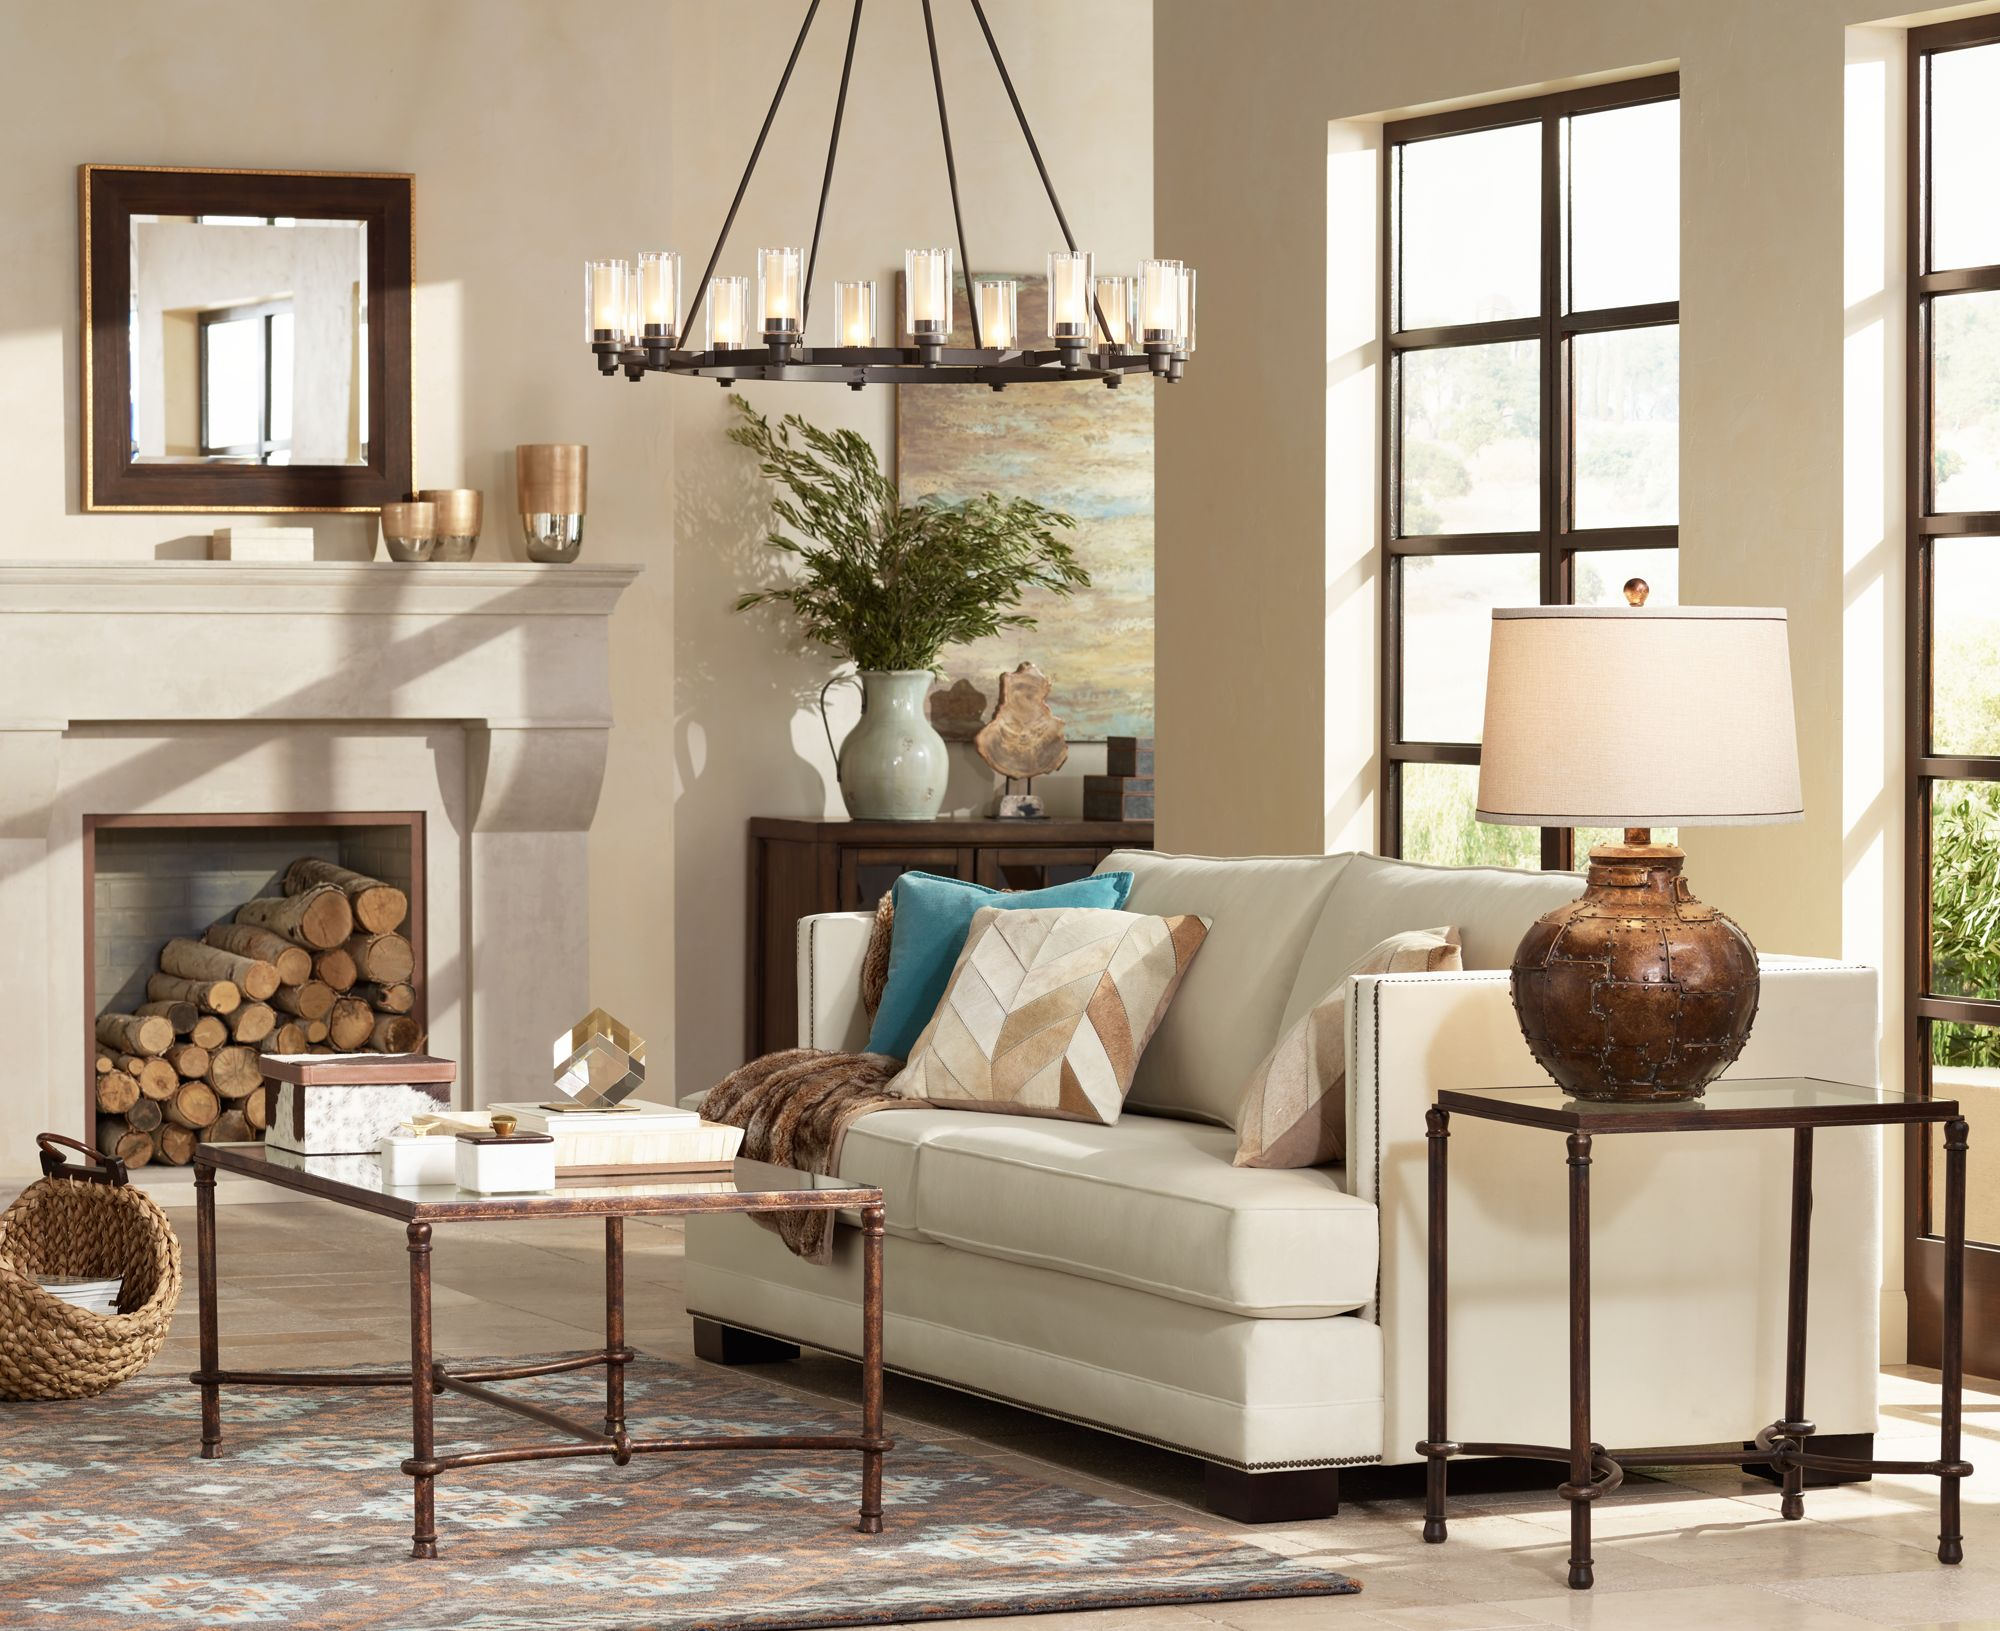 Gentil A Large Chandelier Anchors A Cozy Living Room With Rustic Touches.